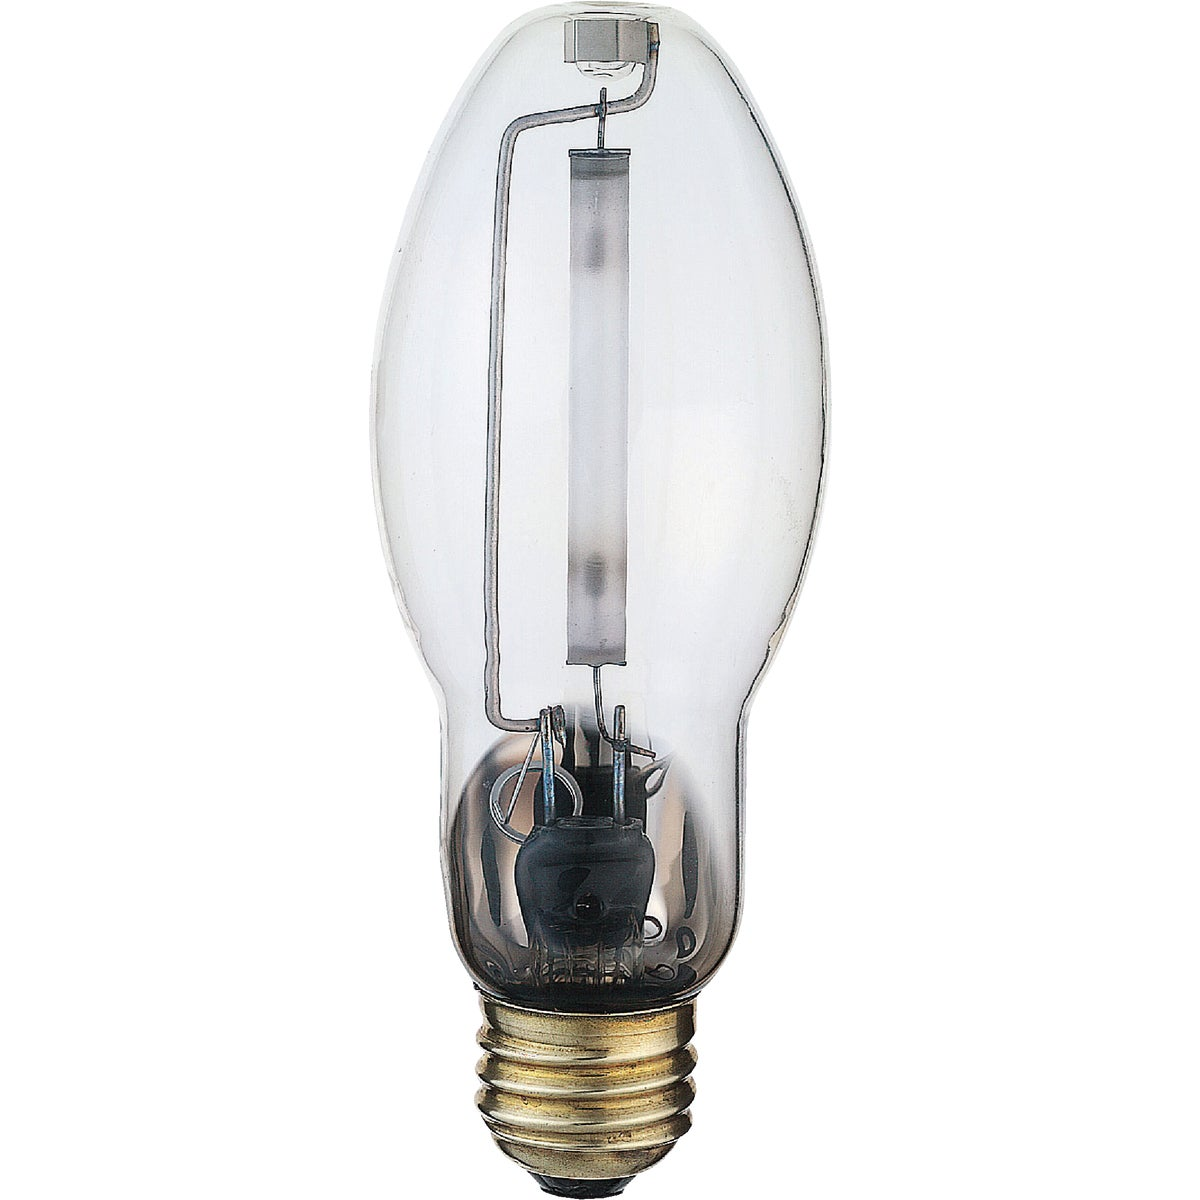 100W HP SODIUM BULB - 26423 by G E Lighting Incom